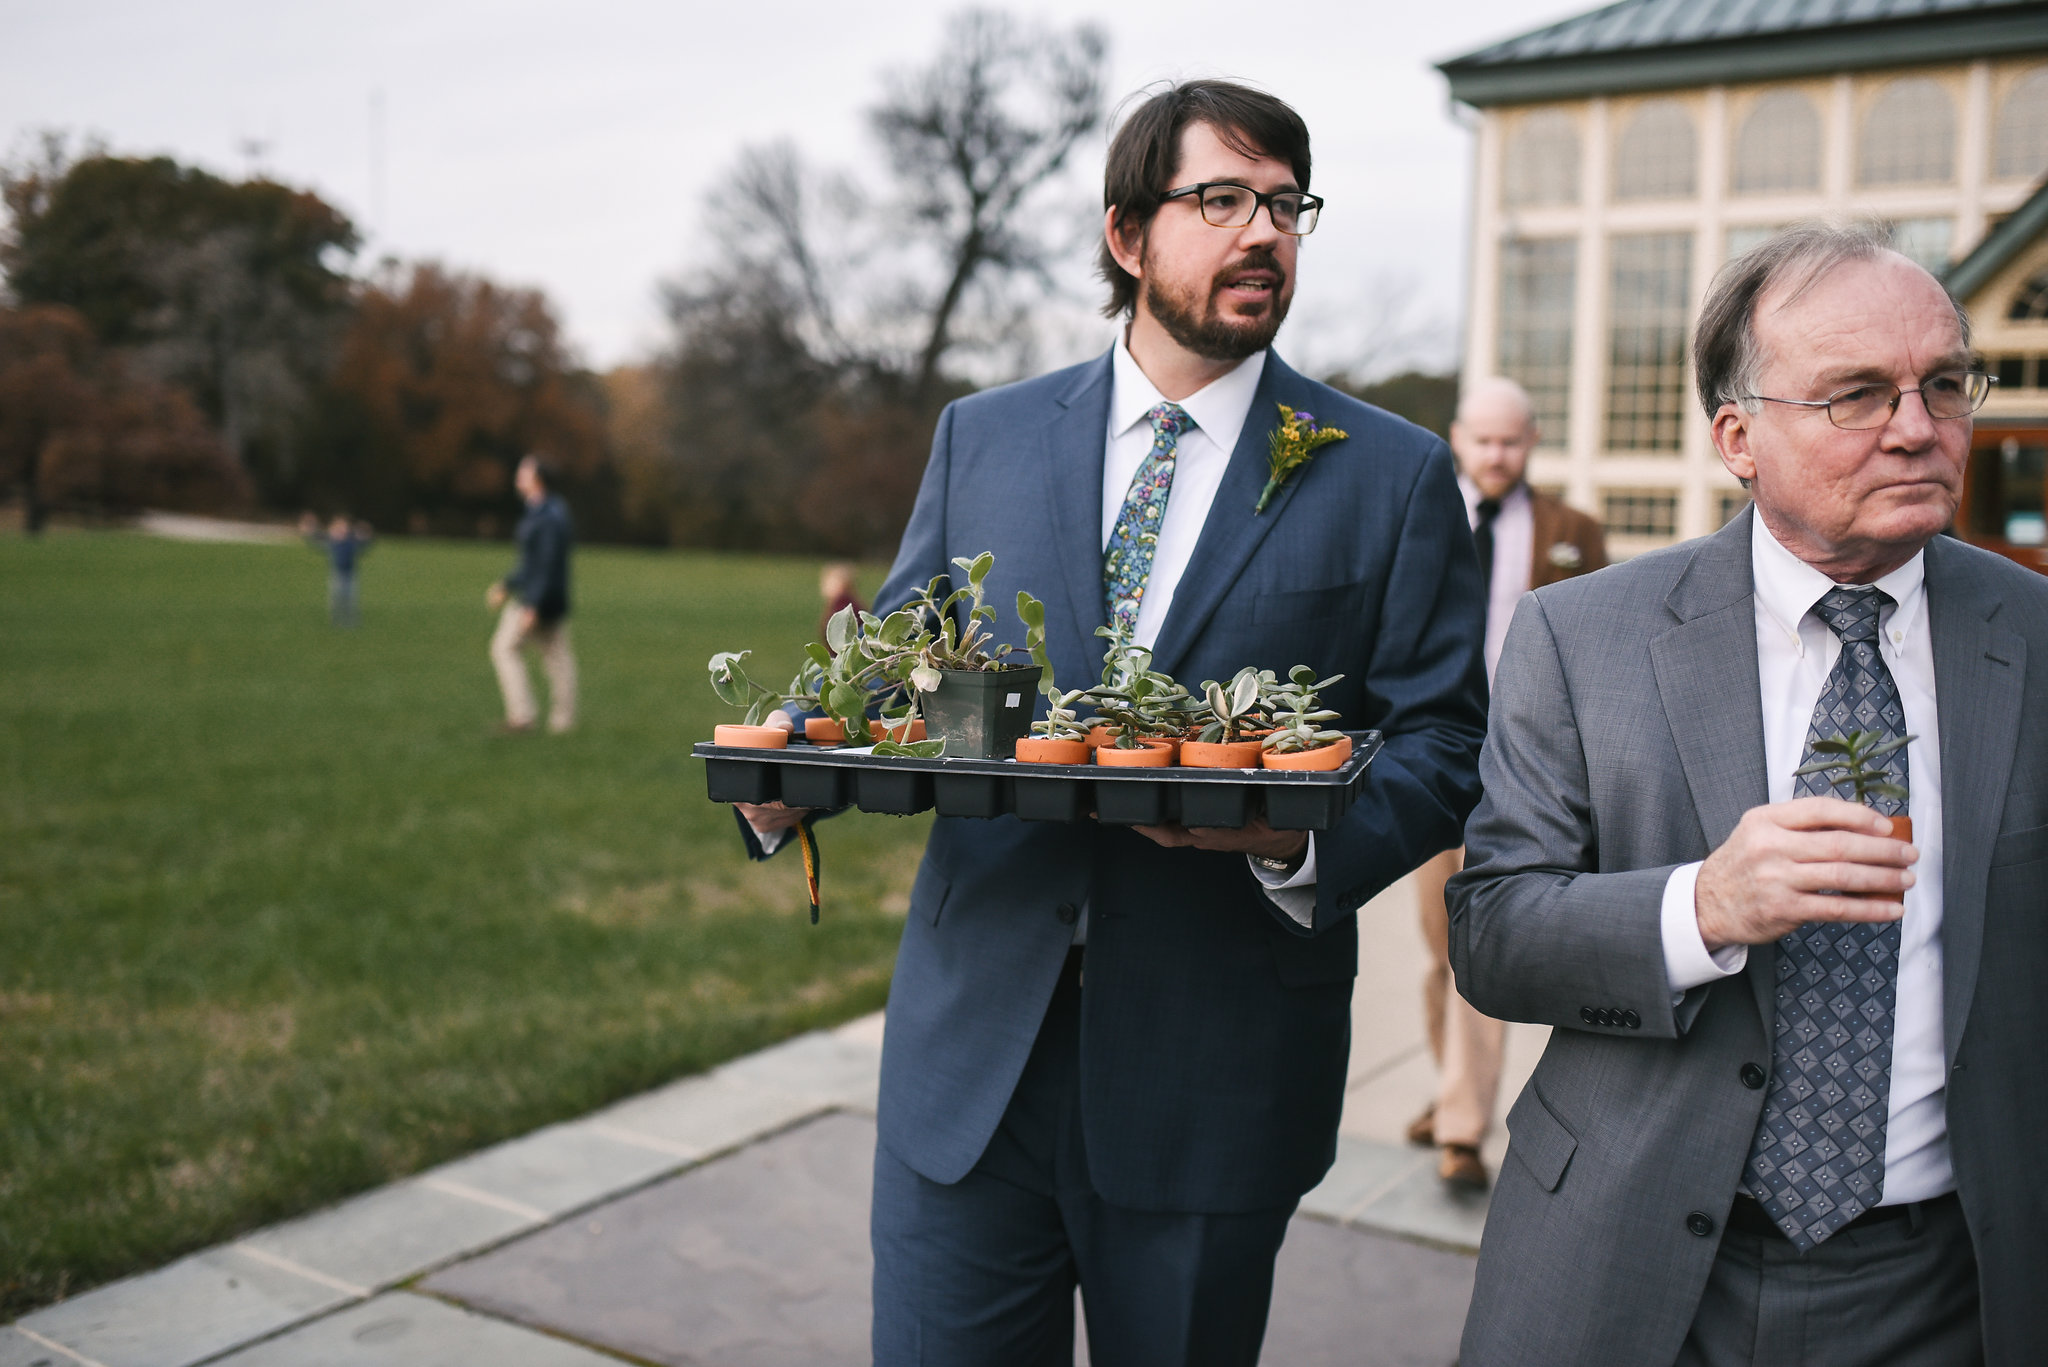 Rawlings Conservatory, Druid Hill Park, Intimate Wedding, Nature, Maryland Wedding Photographer, Romantic, Classic, Groom Walking with Succulent Wedding Favors